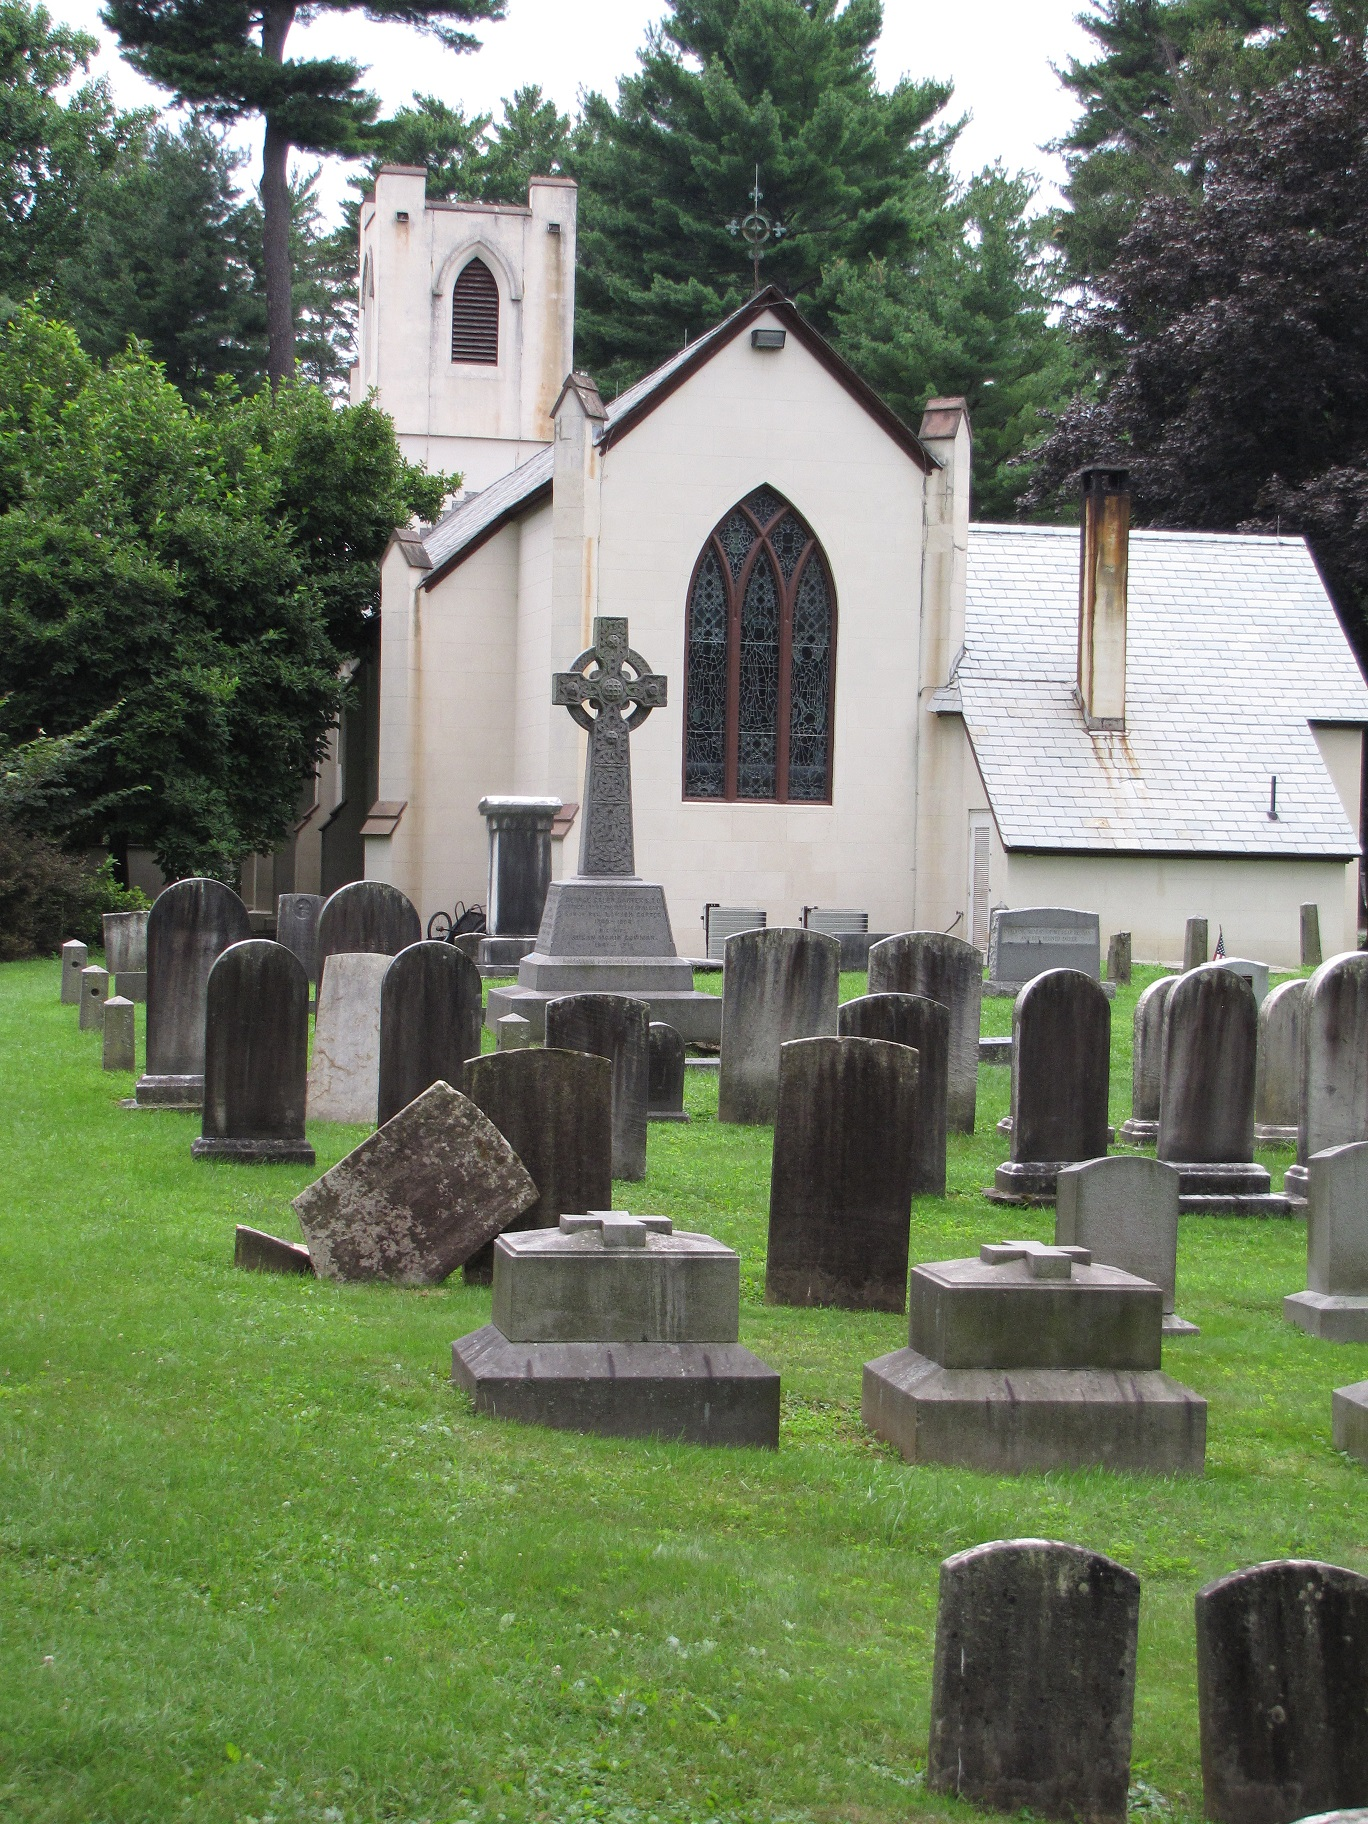 The cemetery at St. James' where members of prominent New York families, including the Roosevelts, are buried